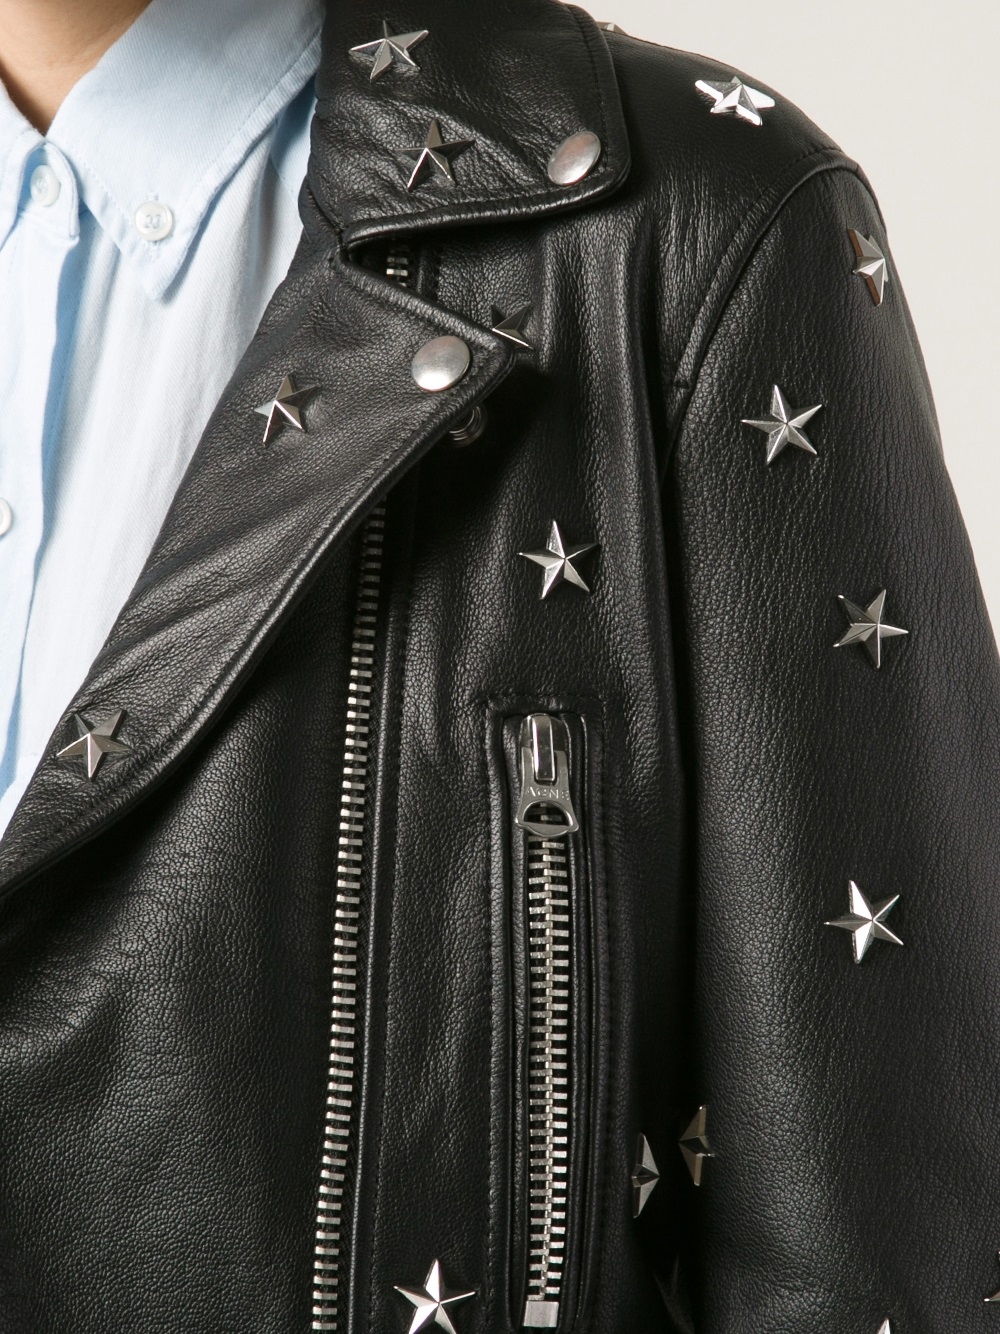 noir ladc look list jacket en men jason reviews for id review leather stud product single